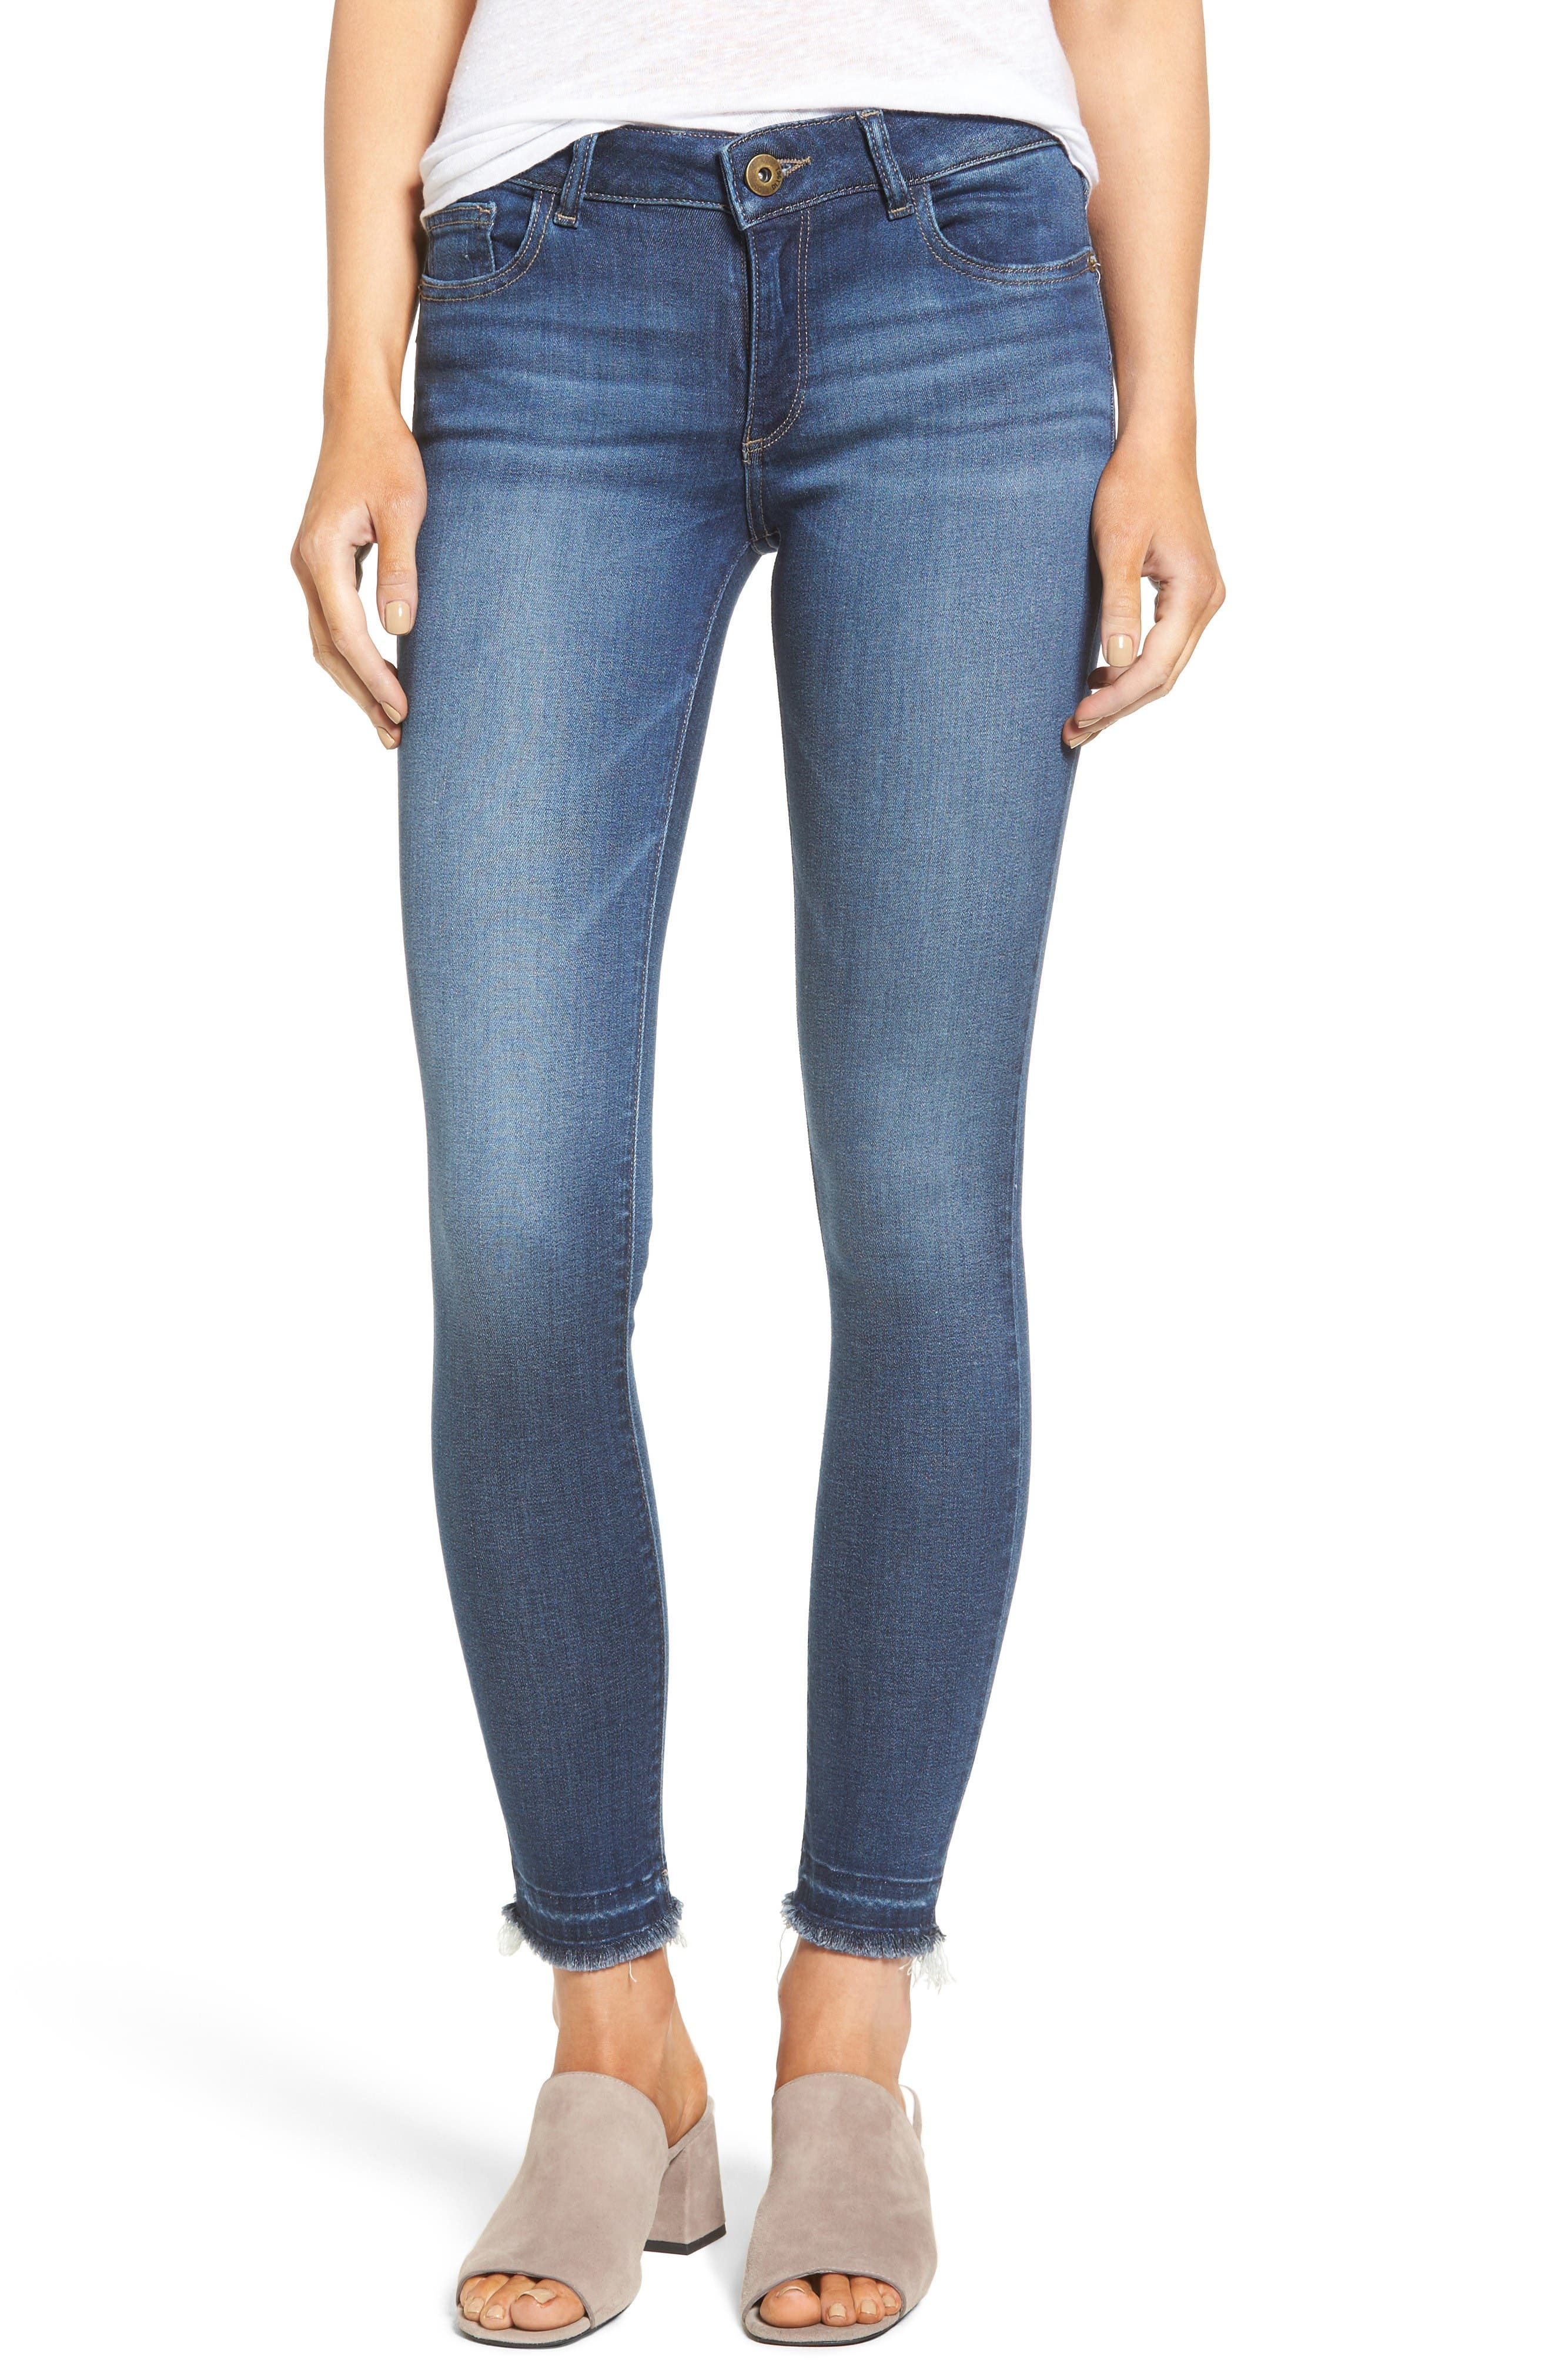 Main Image - DL1961 Emma Power Legging Jeans (Quilter)